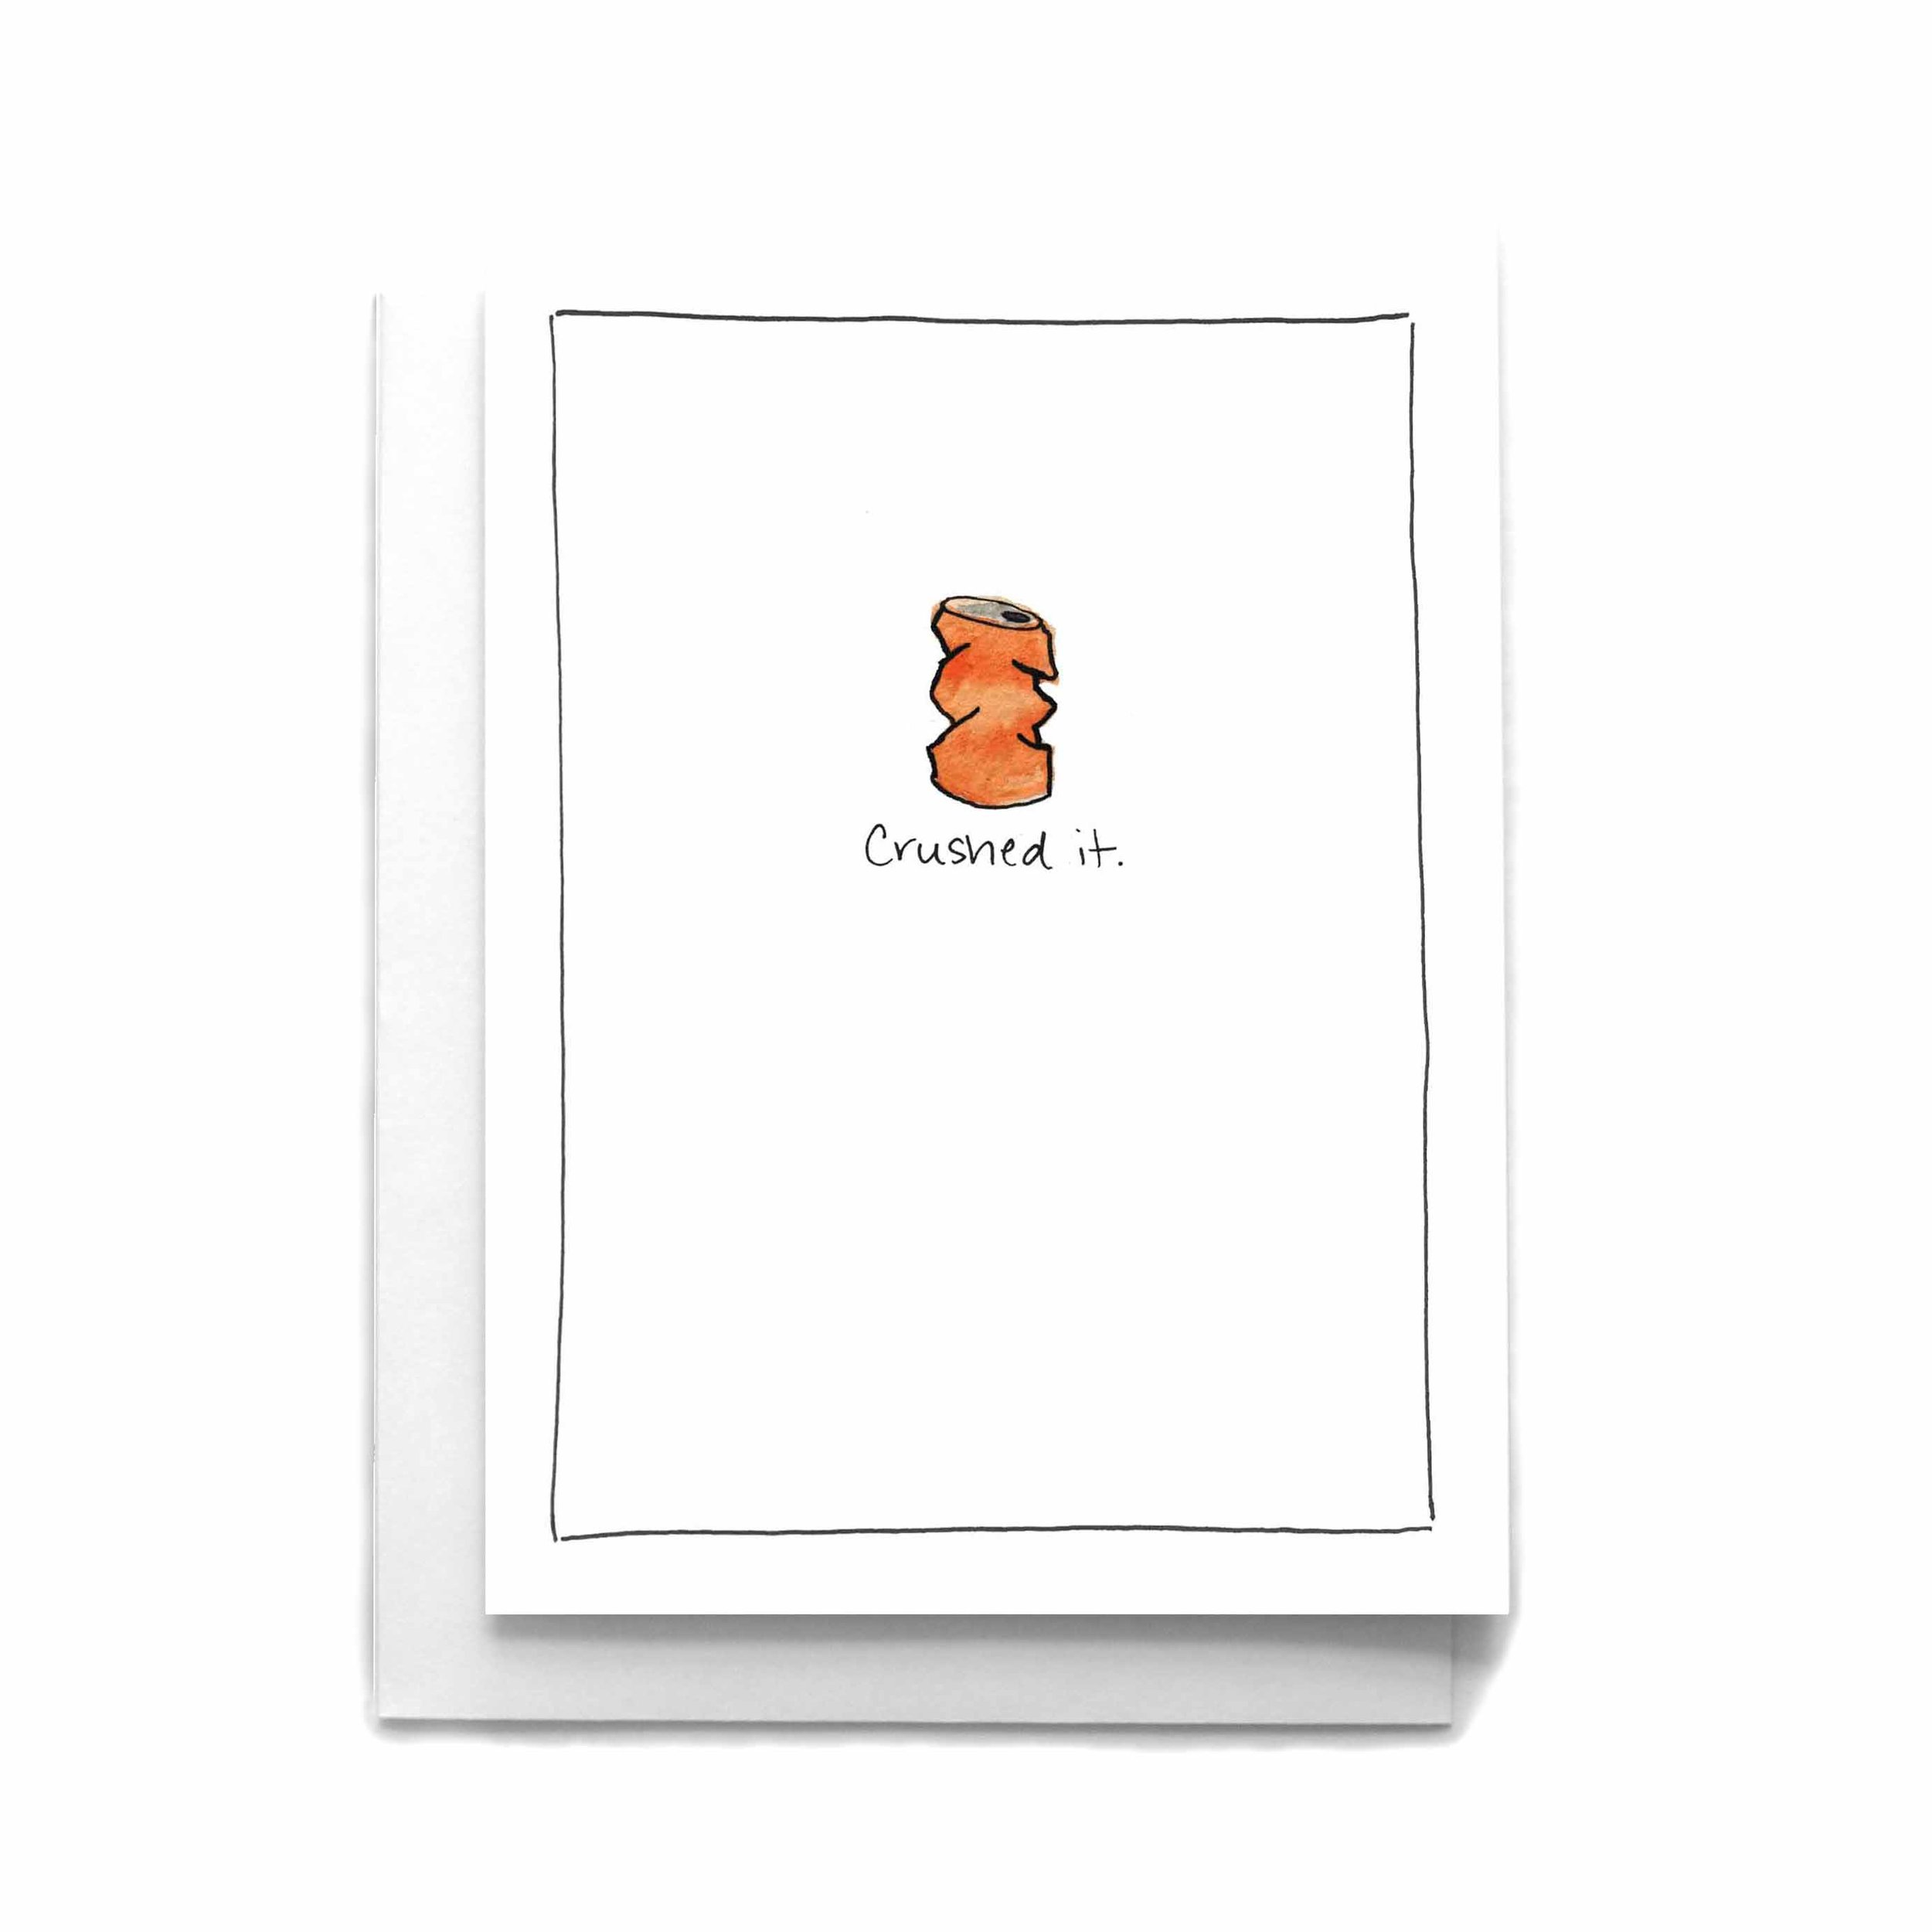 congratulations greeting card crushed it.jpg